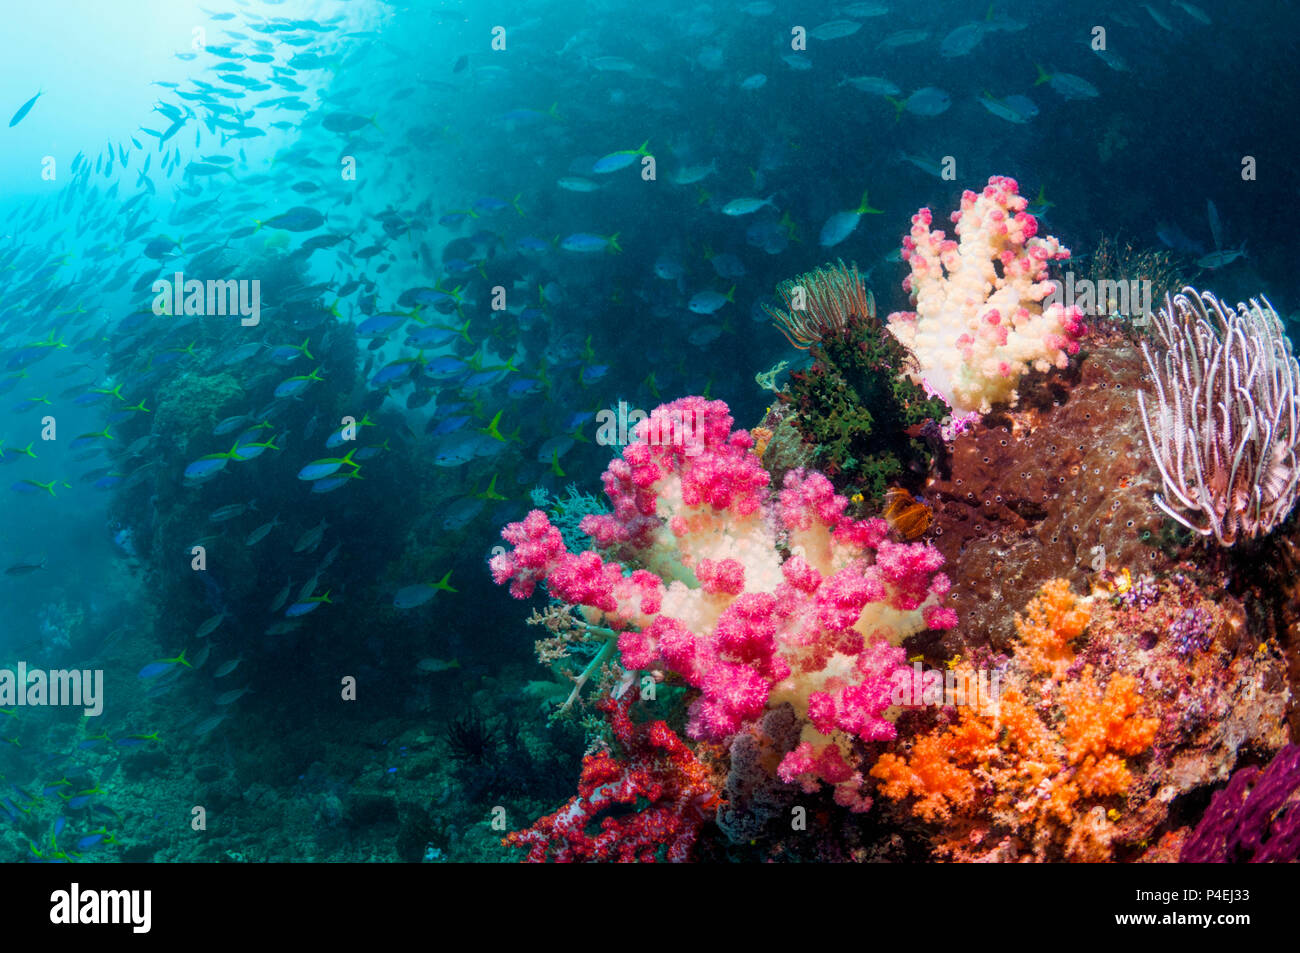 Coral reef scenery with soft corals [Dendronephthya sp.] and Yellowback fusiliers [Caesio teres].  West Papua, Indonesia. Stock Photo